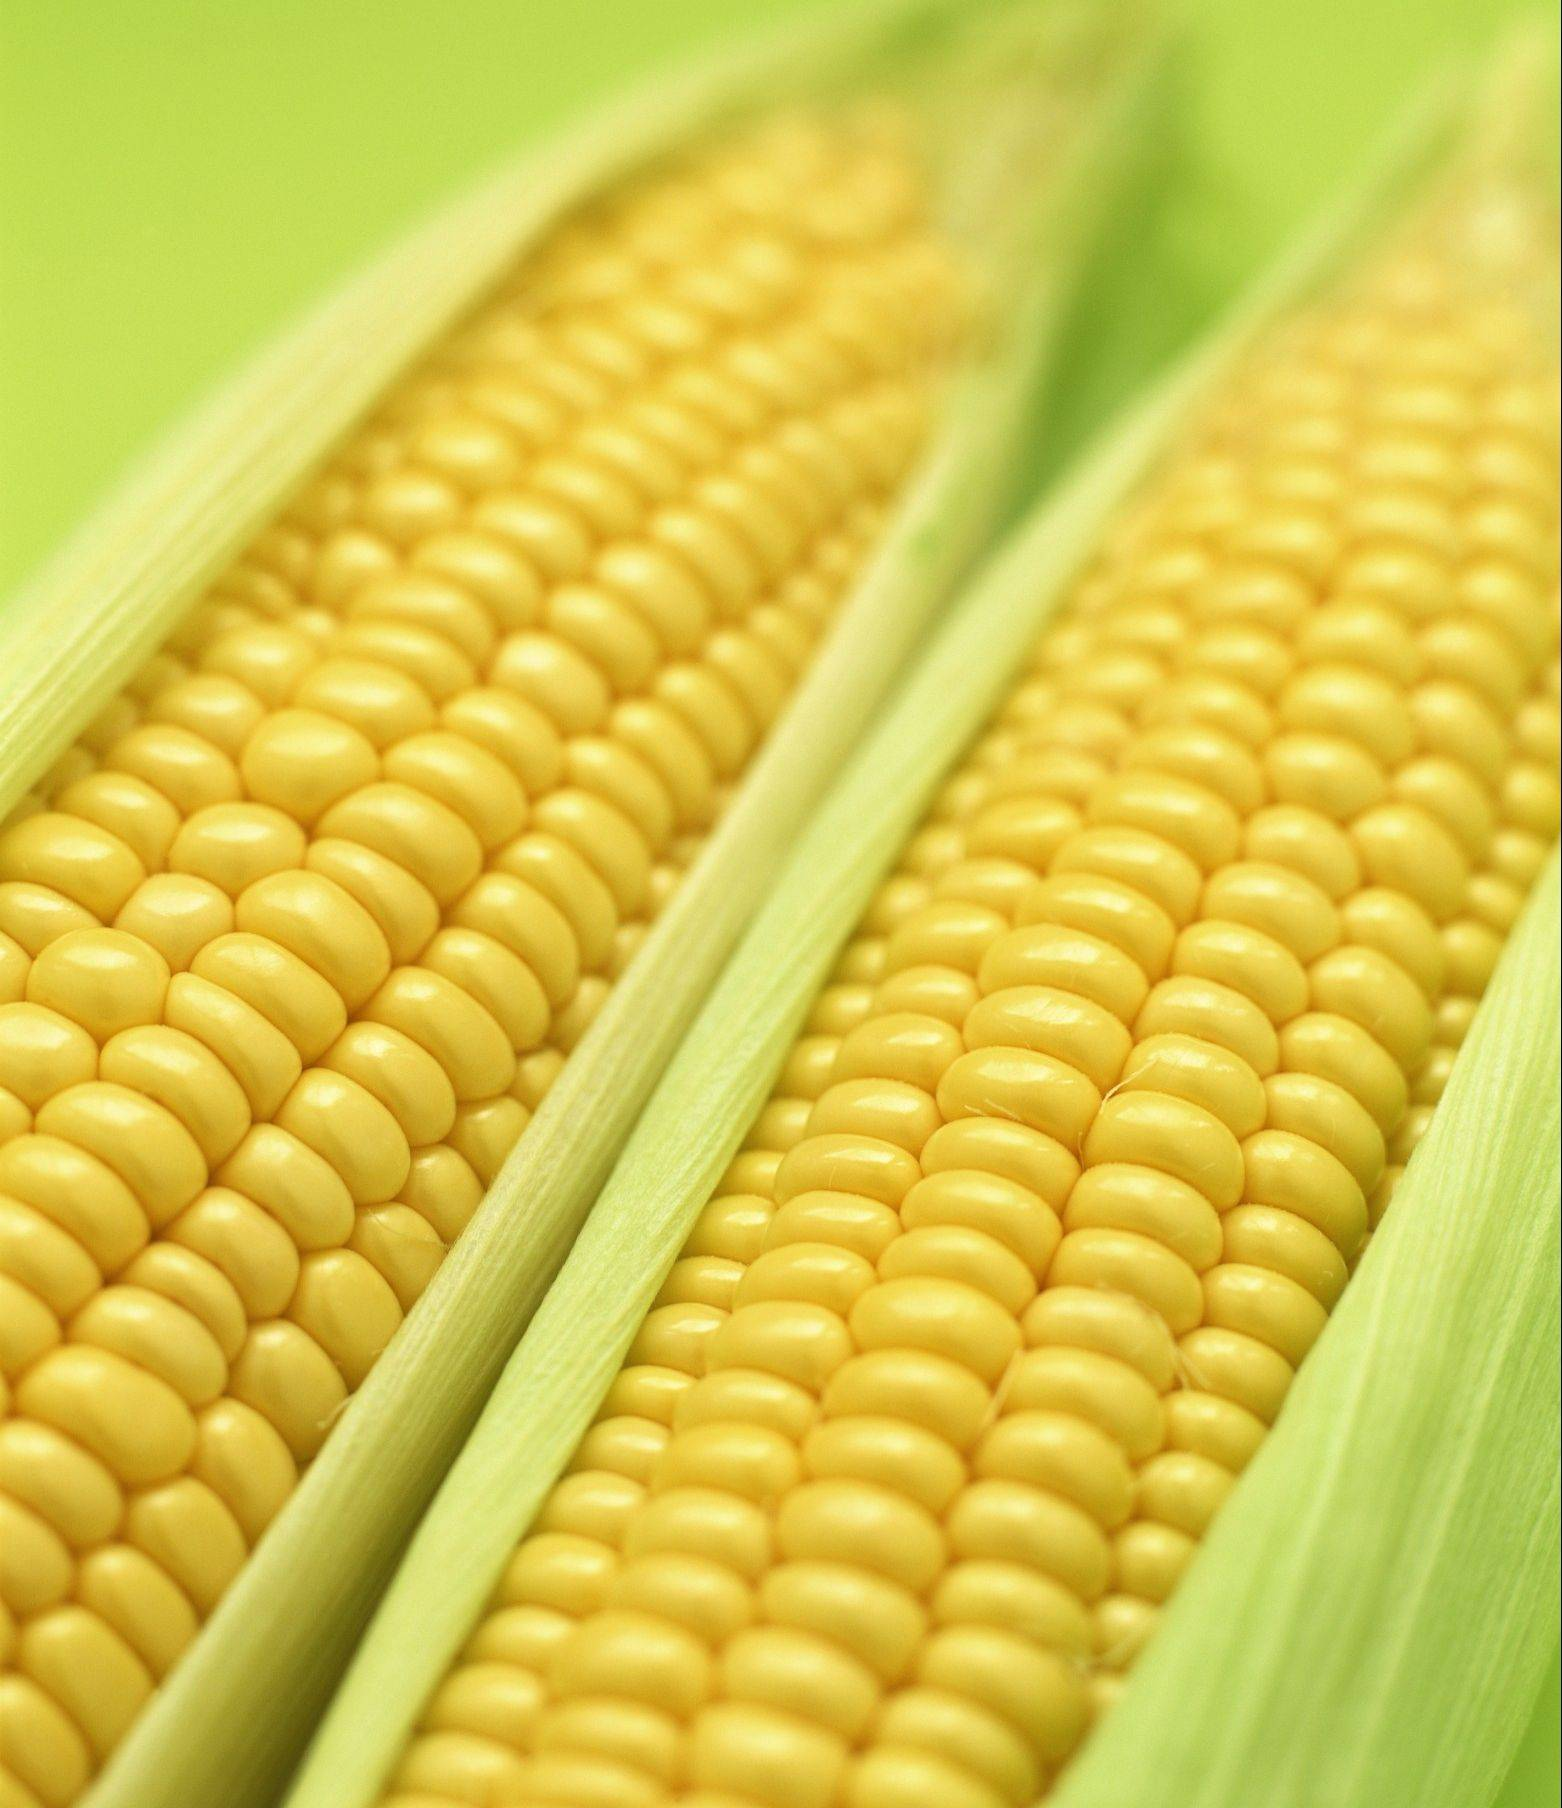 Corn can be healthy for you, if you eat it in moderation with other healthy foods.